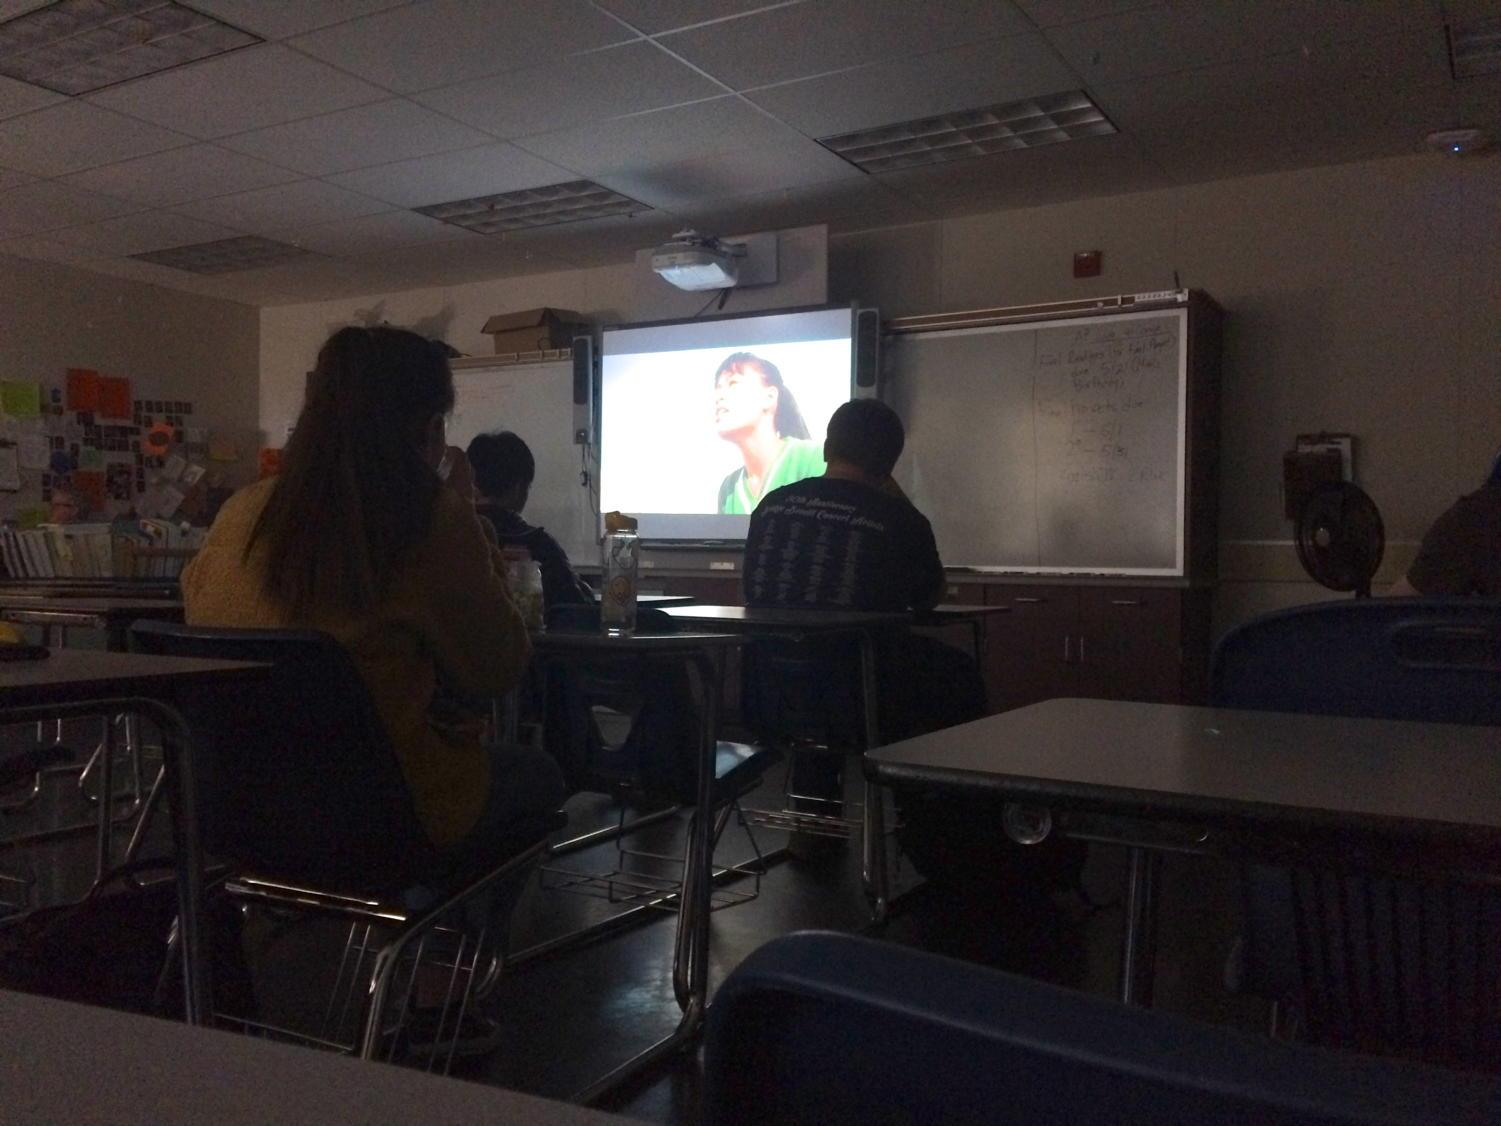 Members of Classic Films club watch a movie during lunch.